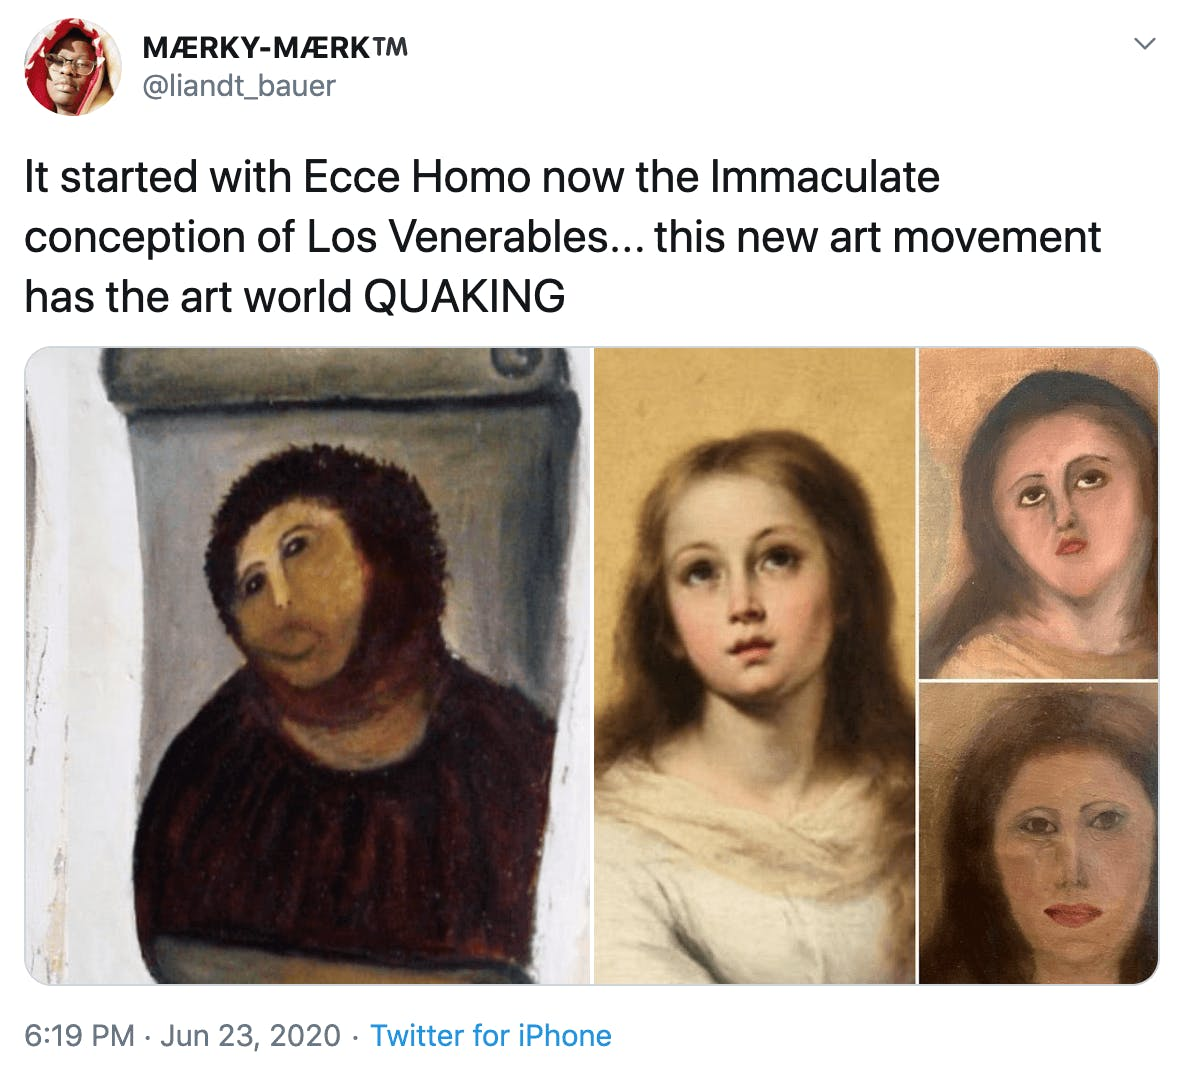 It started with Ecce Homo now the Immaculate conception of Los Venerables... this new art movement has the art world QUAKING